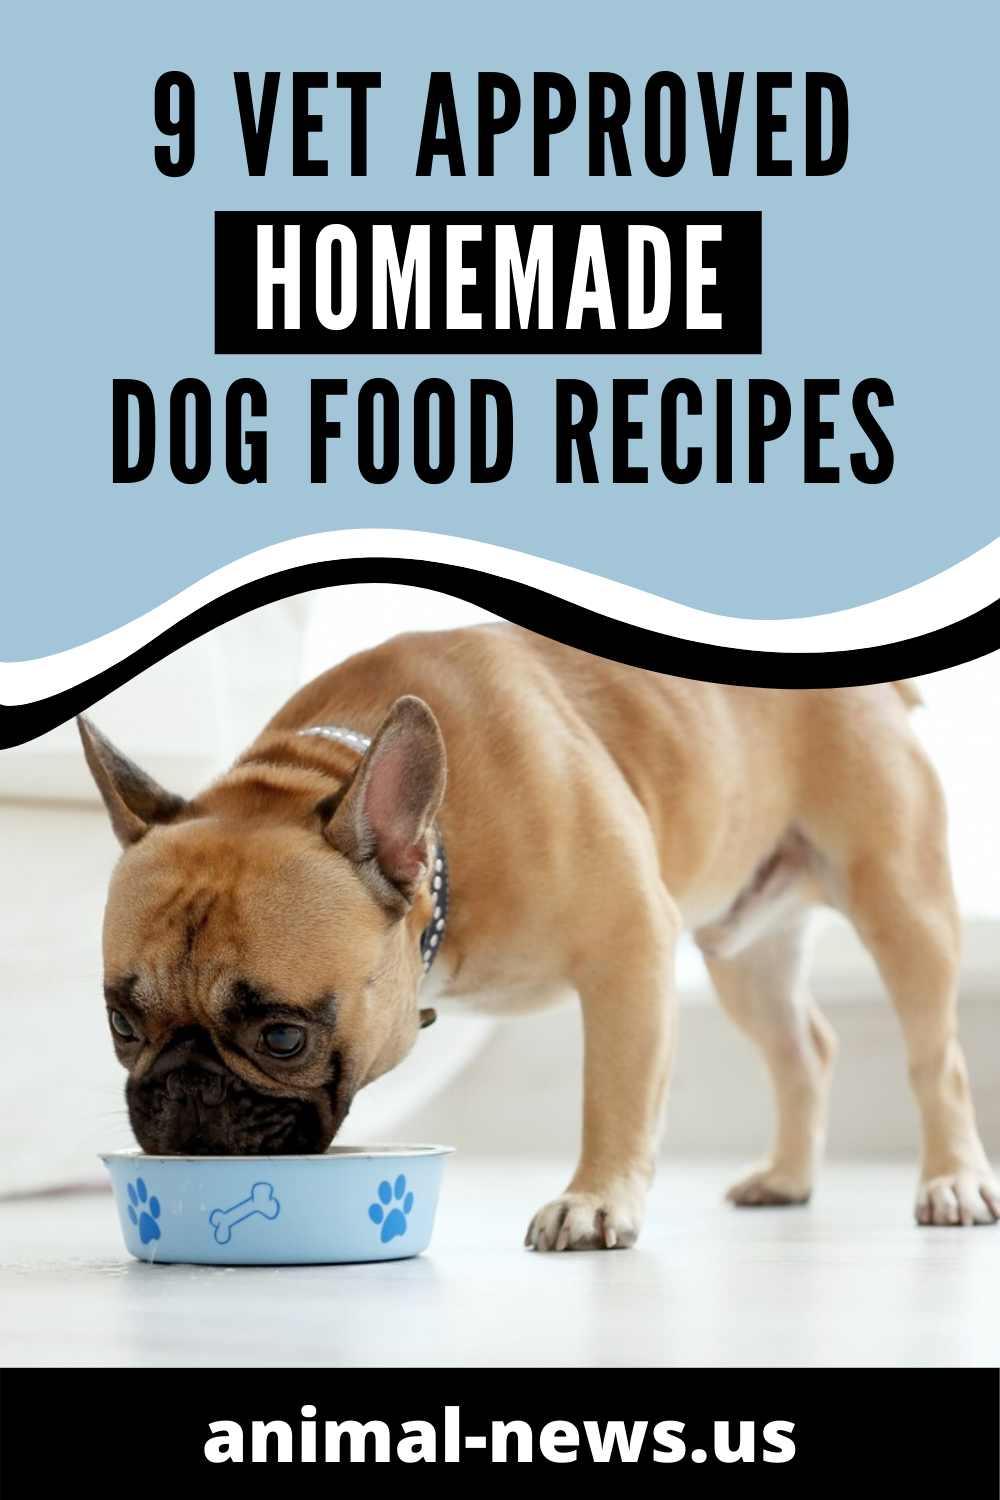 9 Vet Approved Homemade Dog Food Recipes for a Thriving Pup #Vet Approved #Homemade #Crockpot #Fish #Raw #Grain Free #Chicken #Easy #Healthy